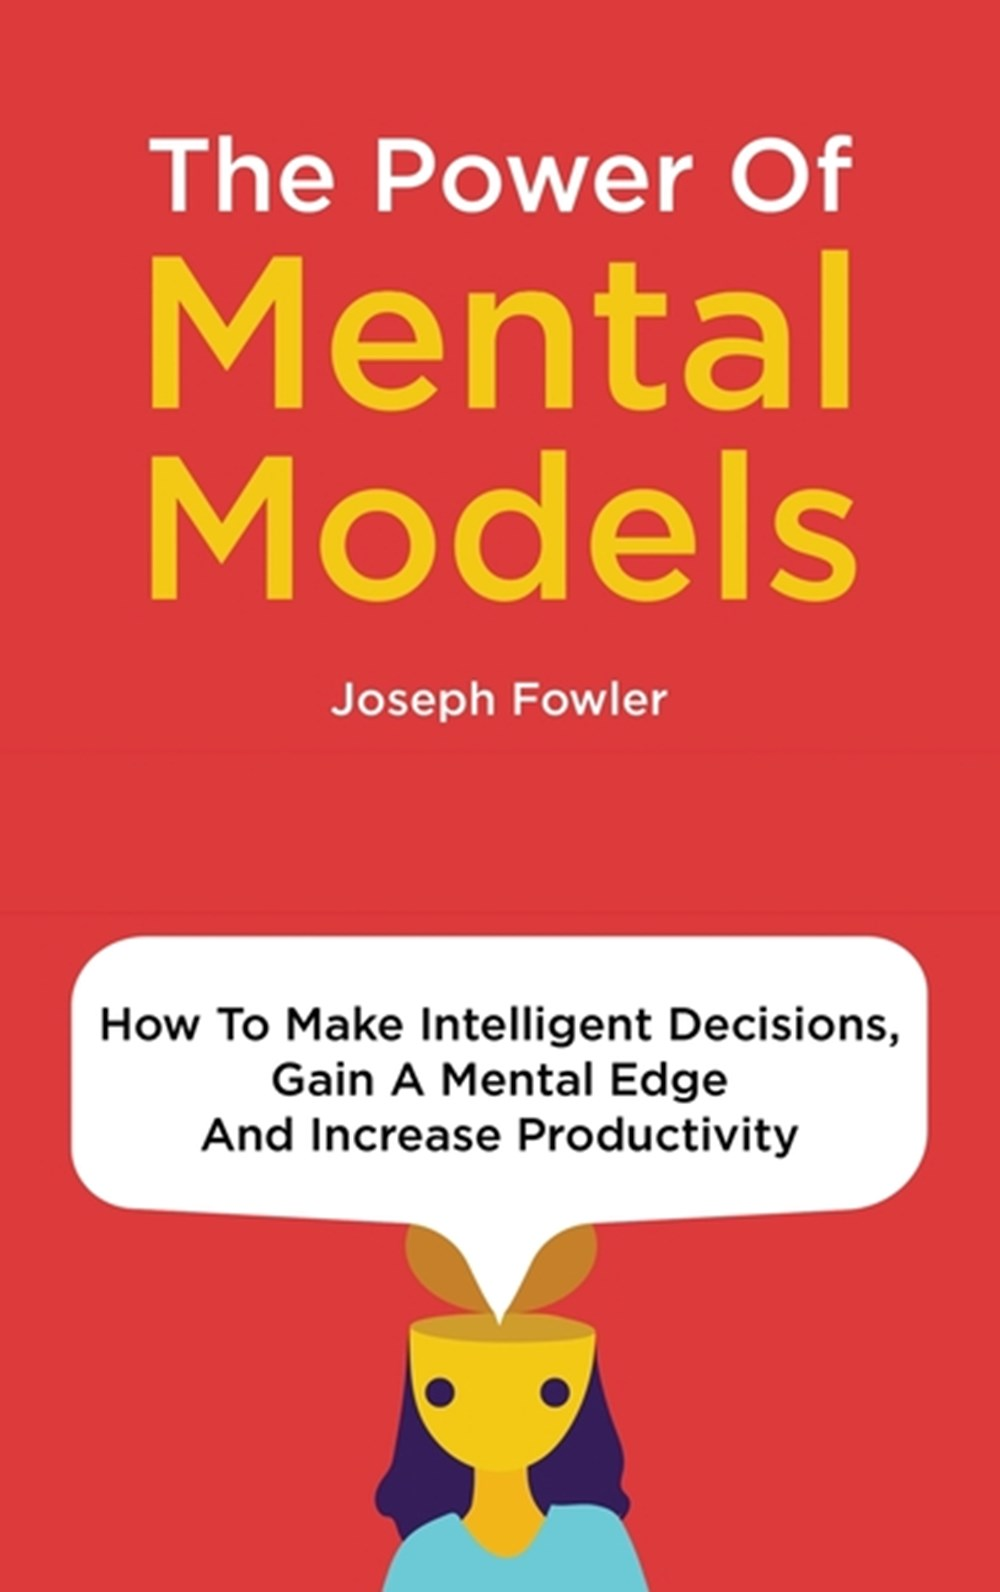 Power Of Mental Models How To Make Intelligent Decisions, Gain A Mental Edge And Increase Productivi